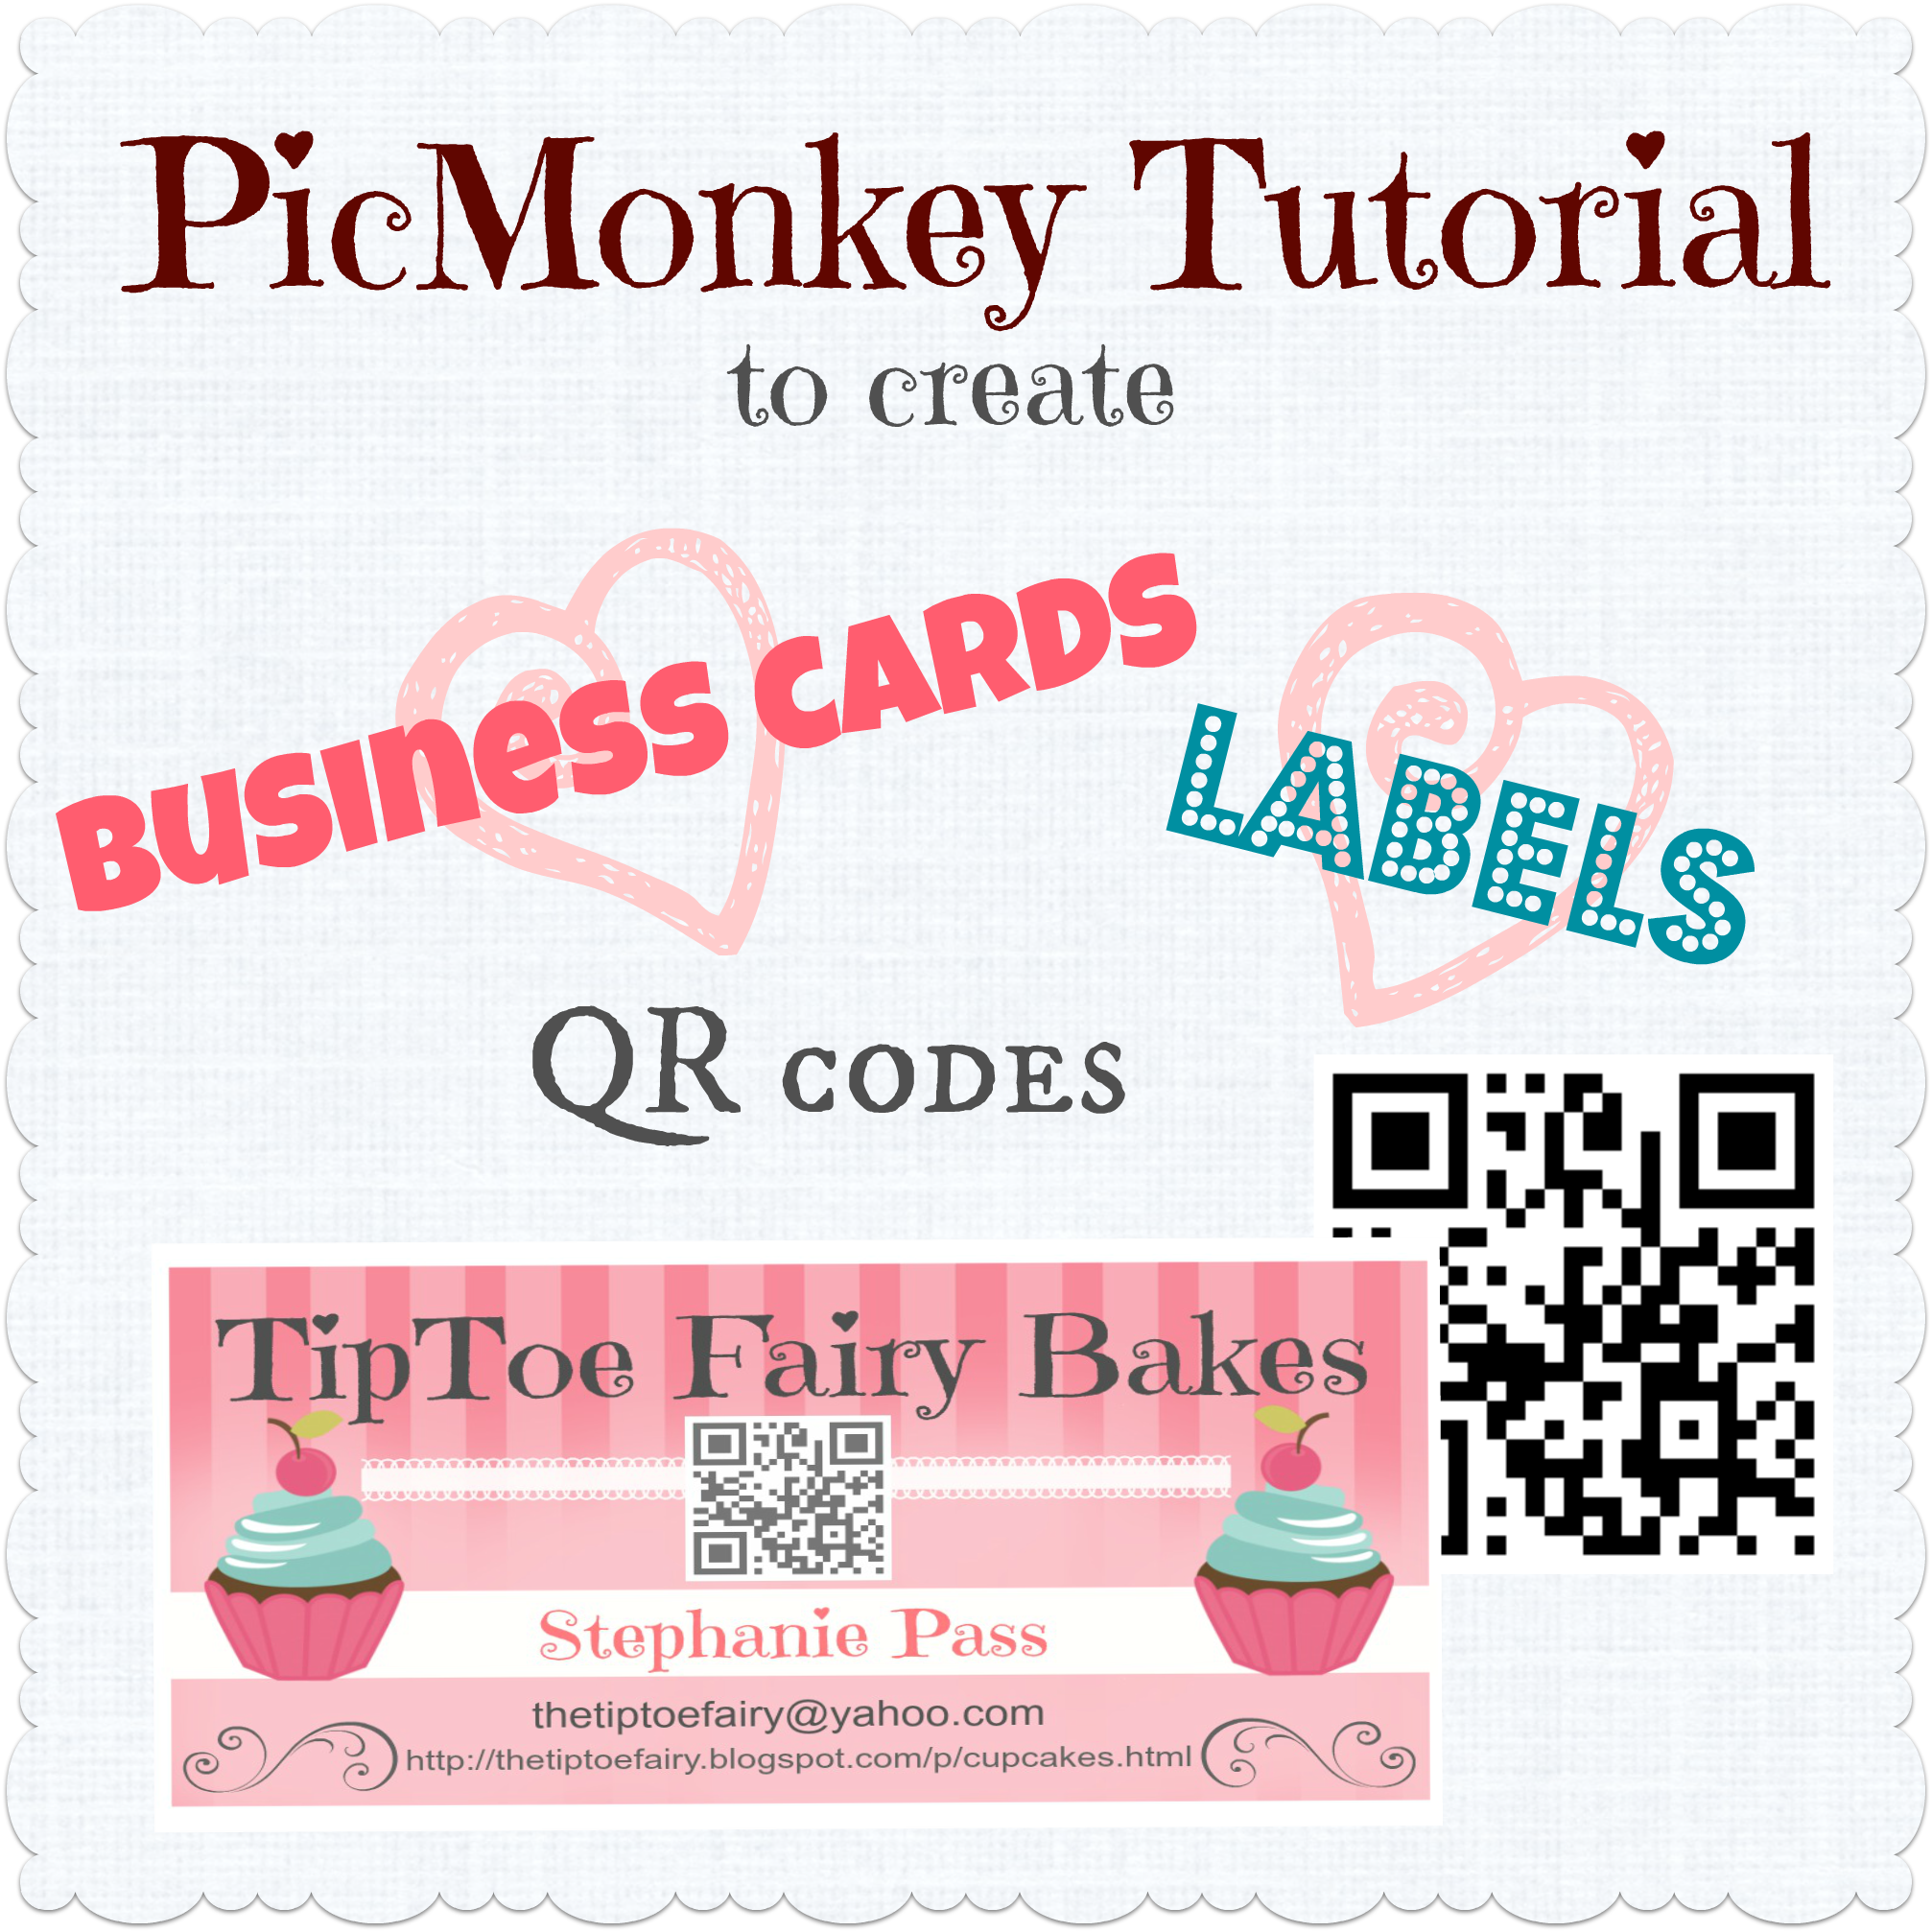 How to Make Your Own Business Cards | Business cards, Business and ...